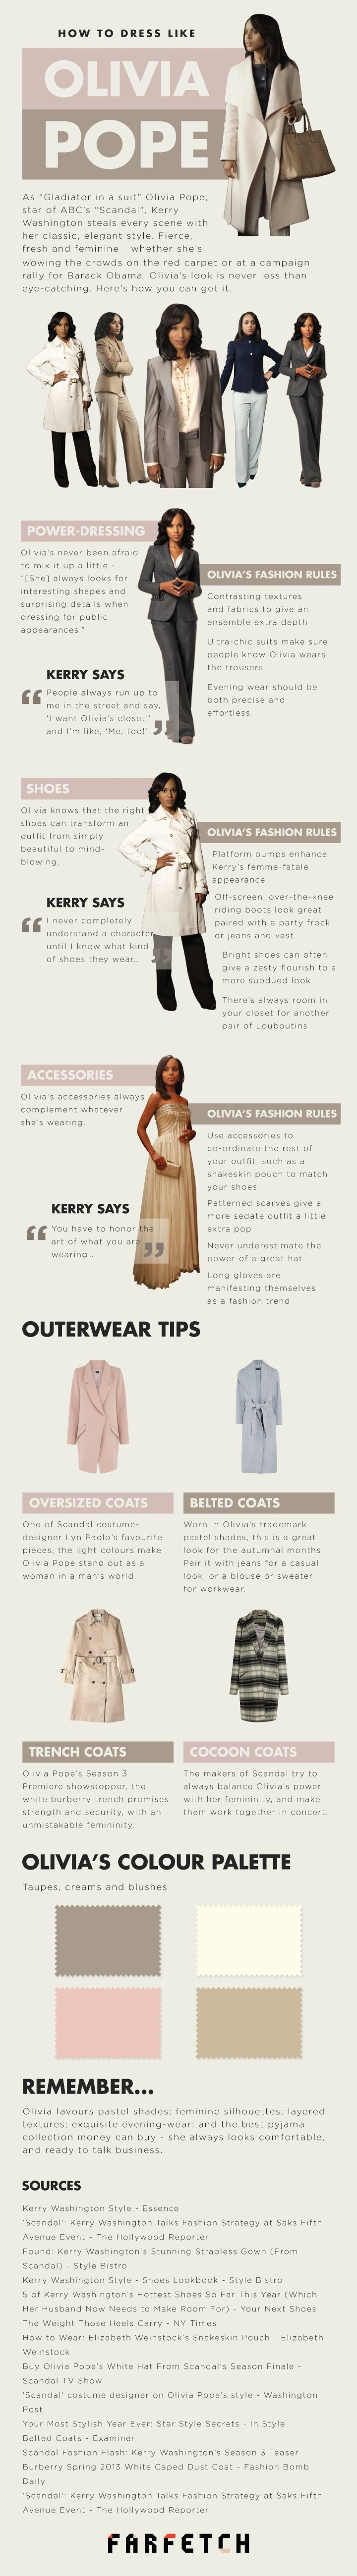 How to Dress Like Olivia Pope? [Infographic]